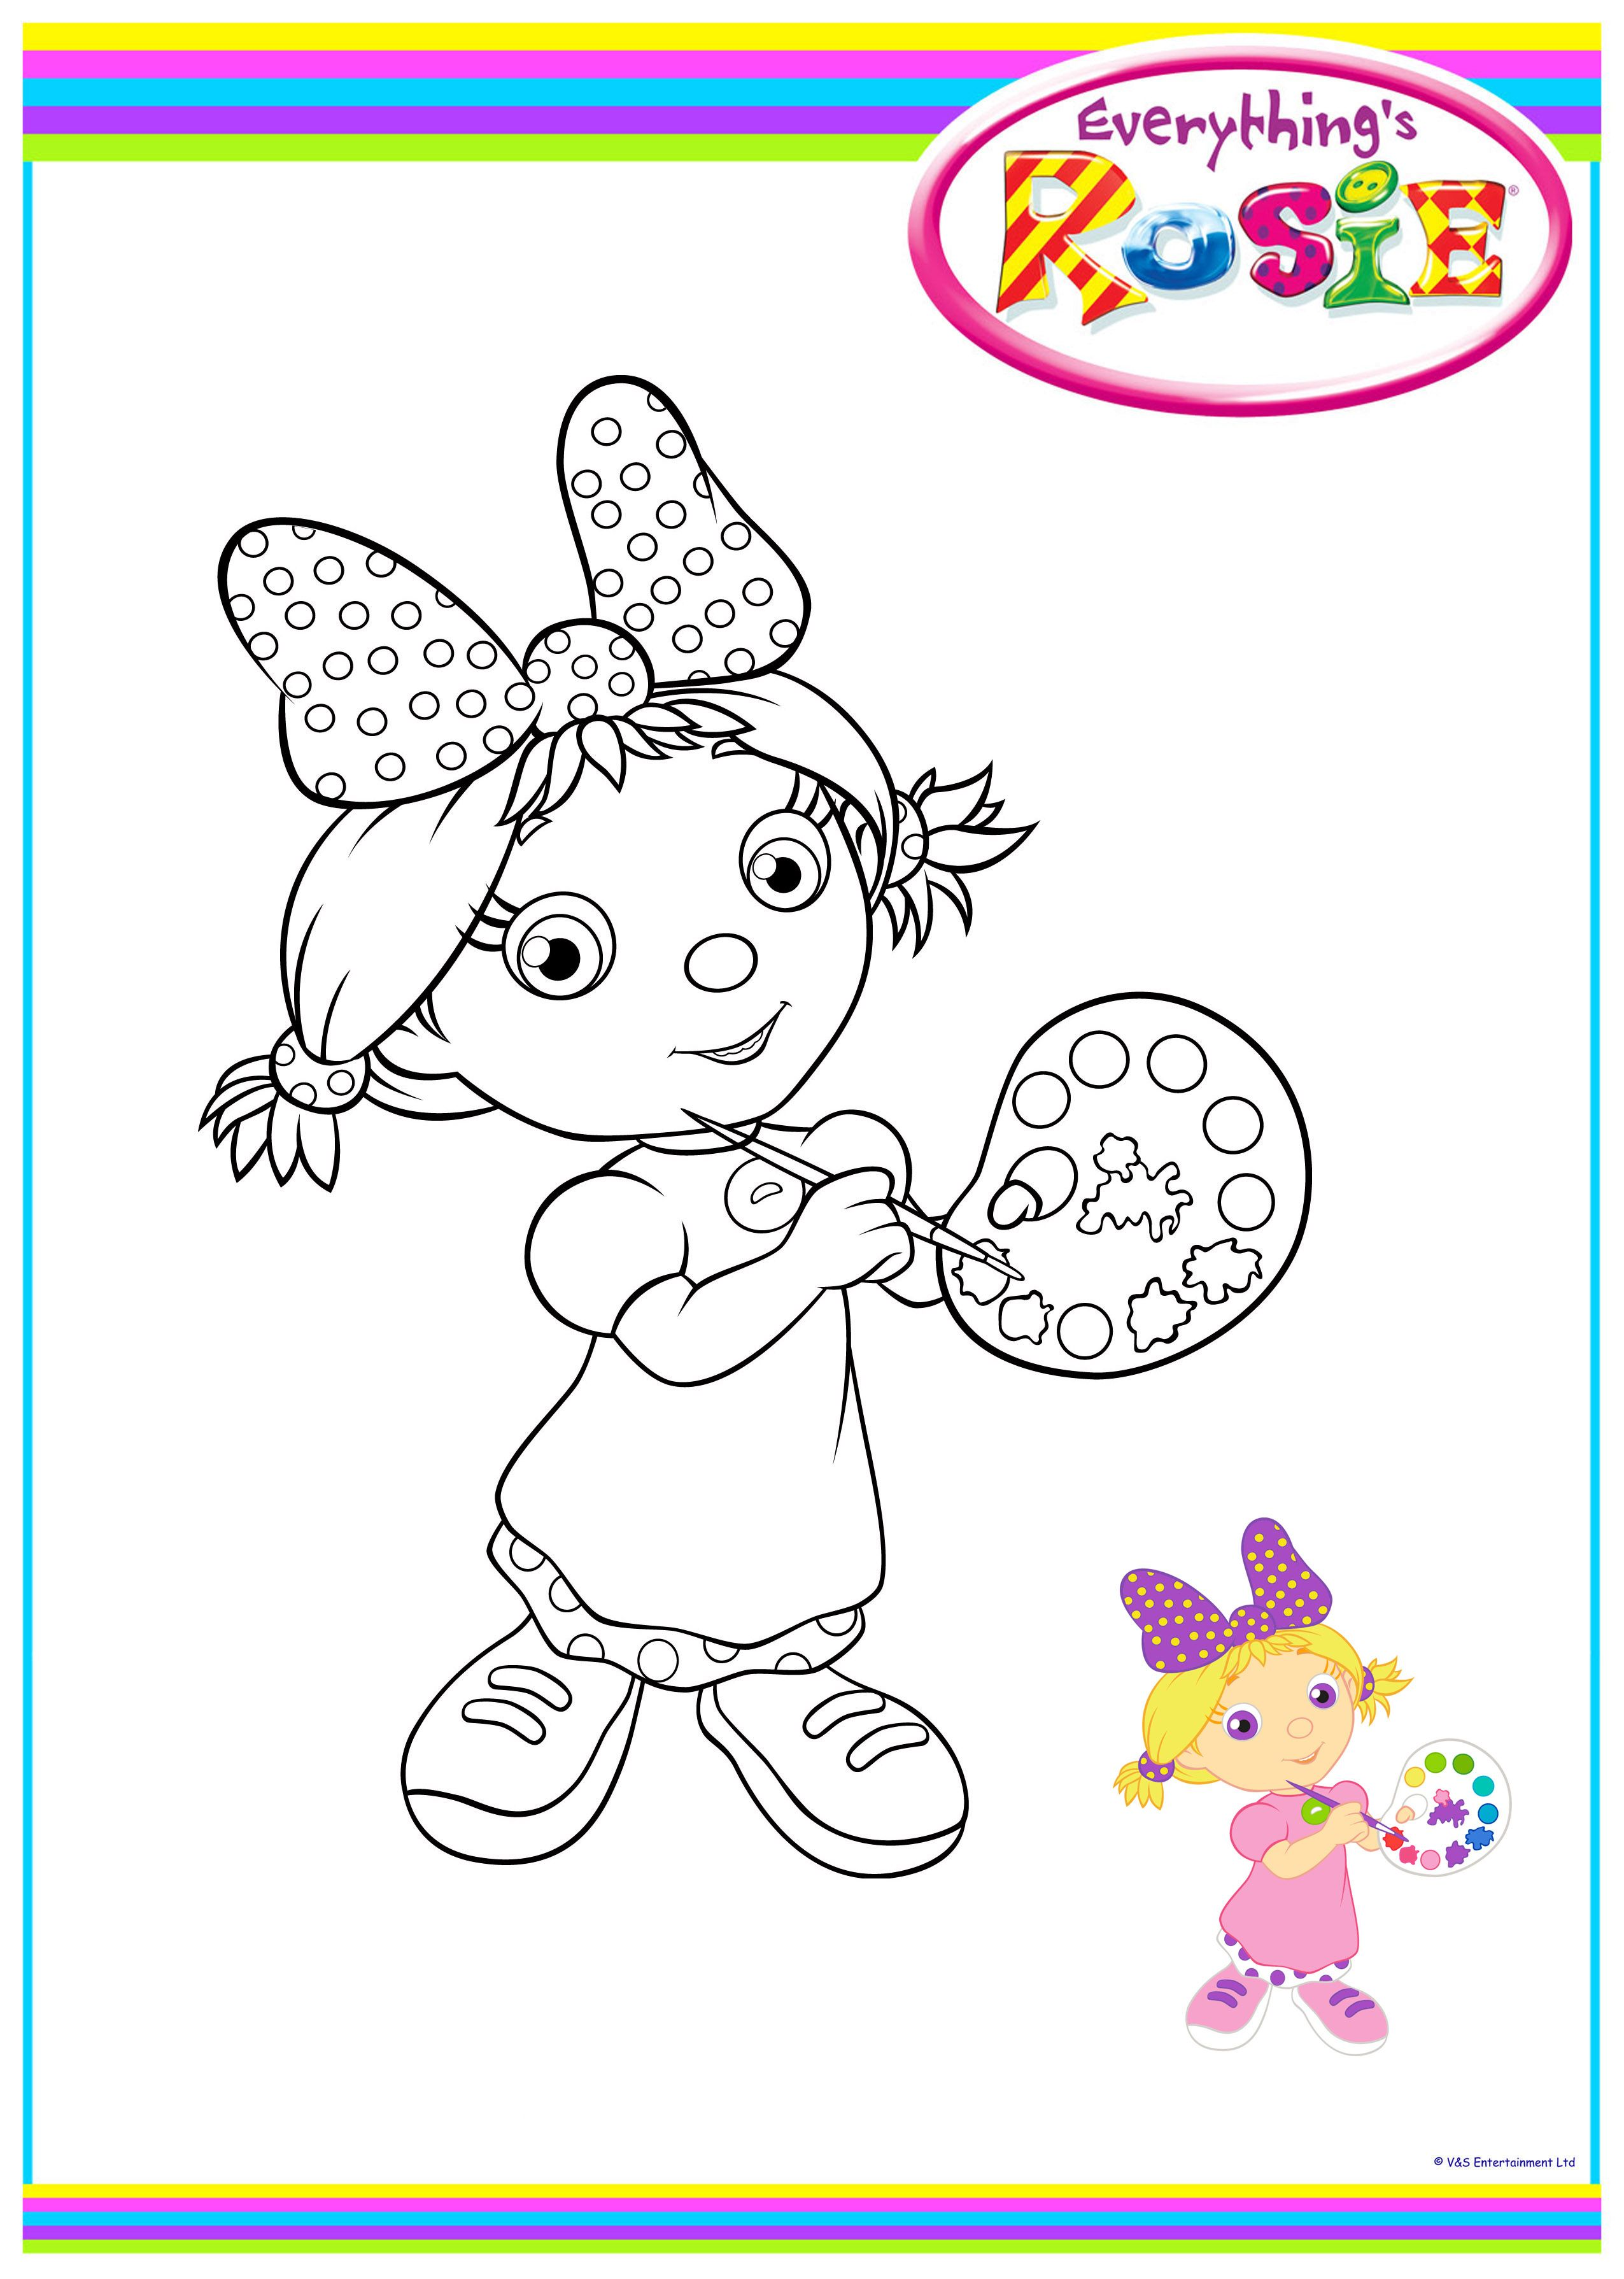 everythings rosie coloring book pages - photo#7